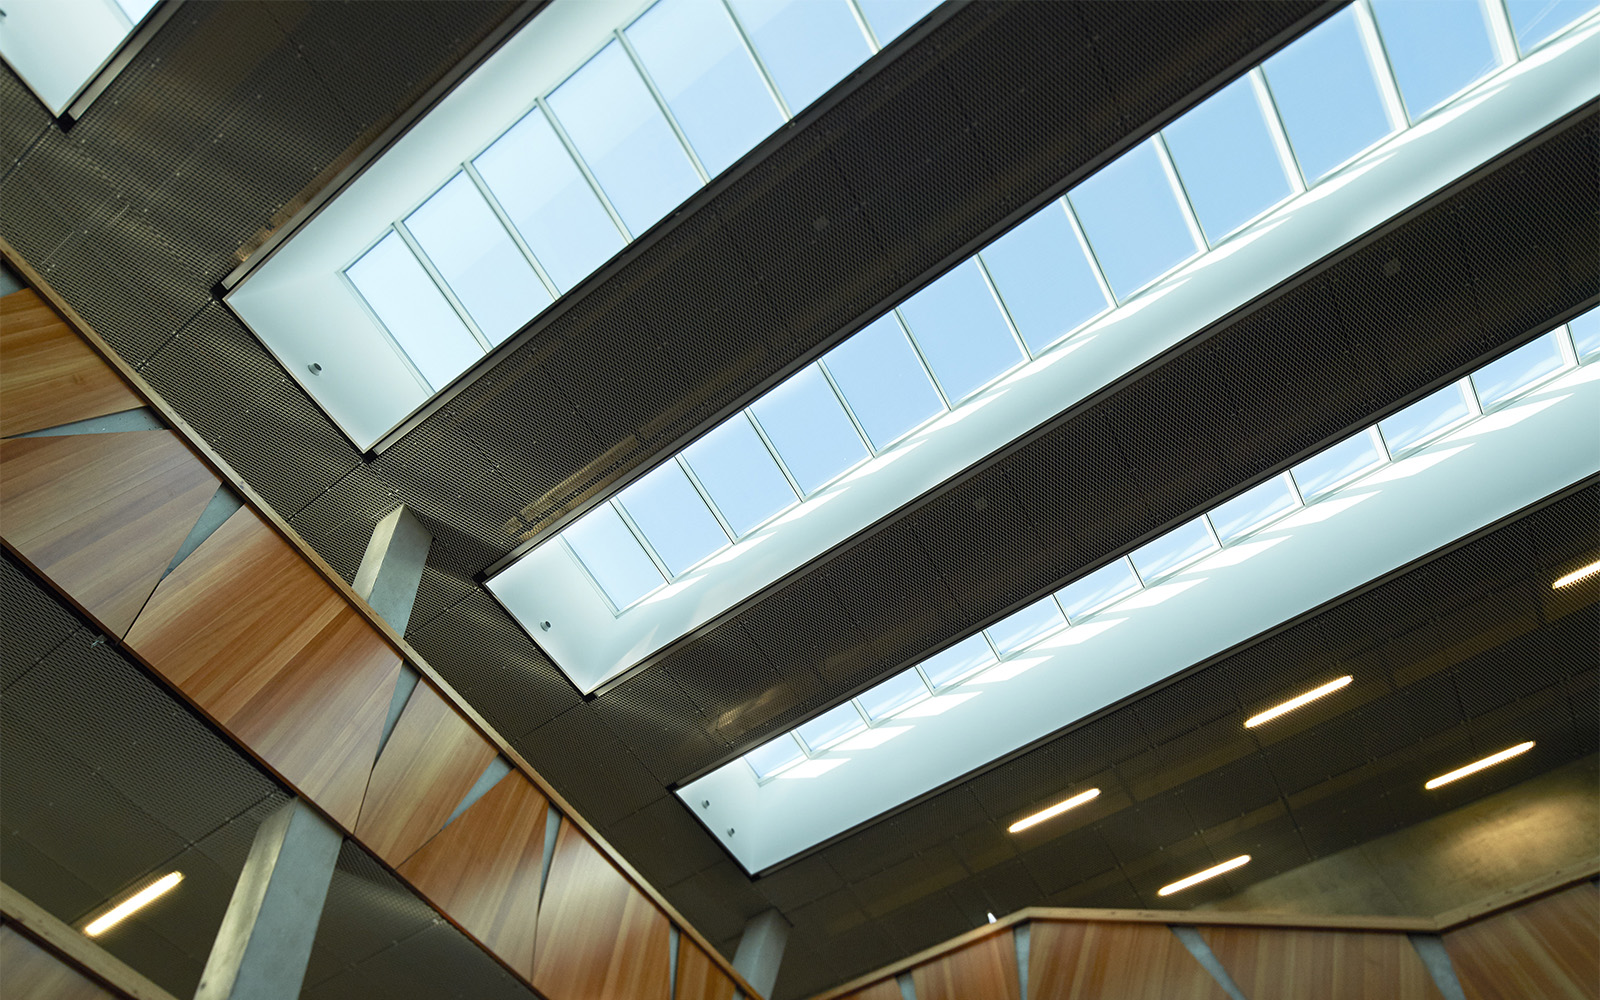 Skylights for thermal control in school building